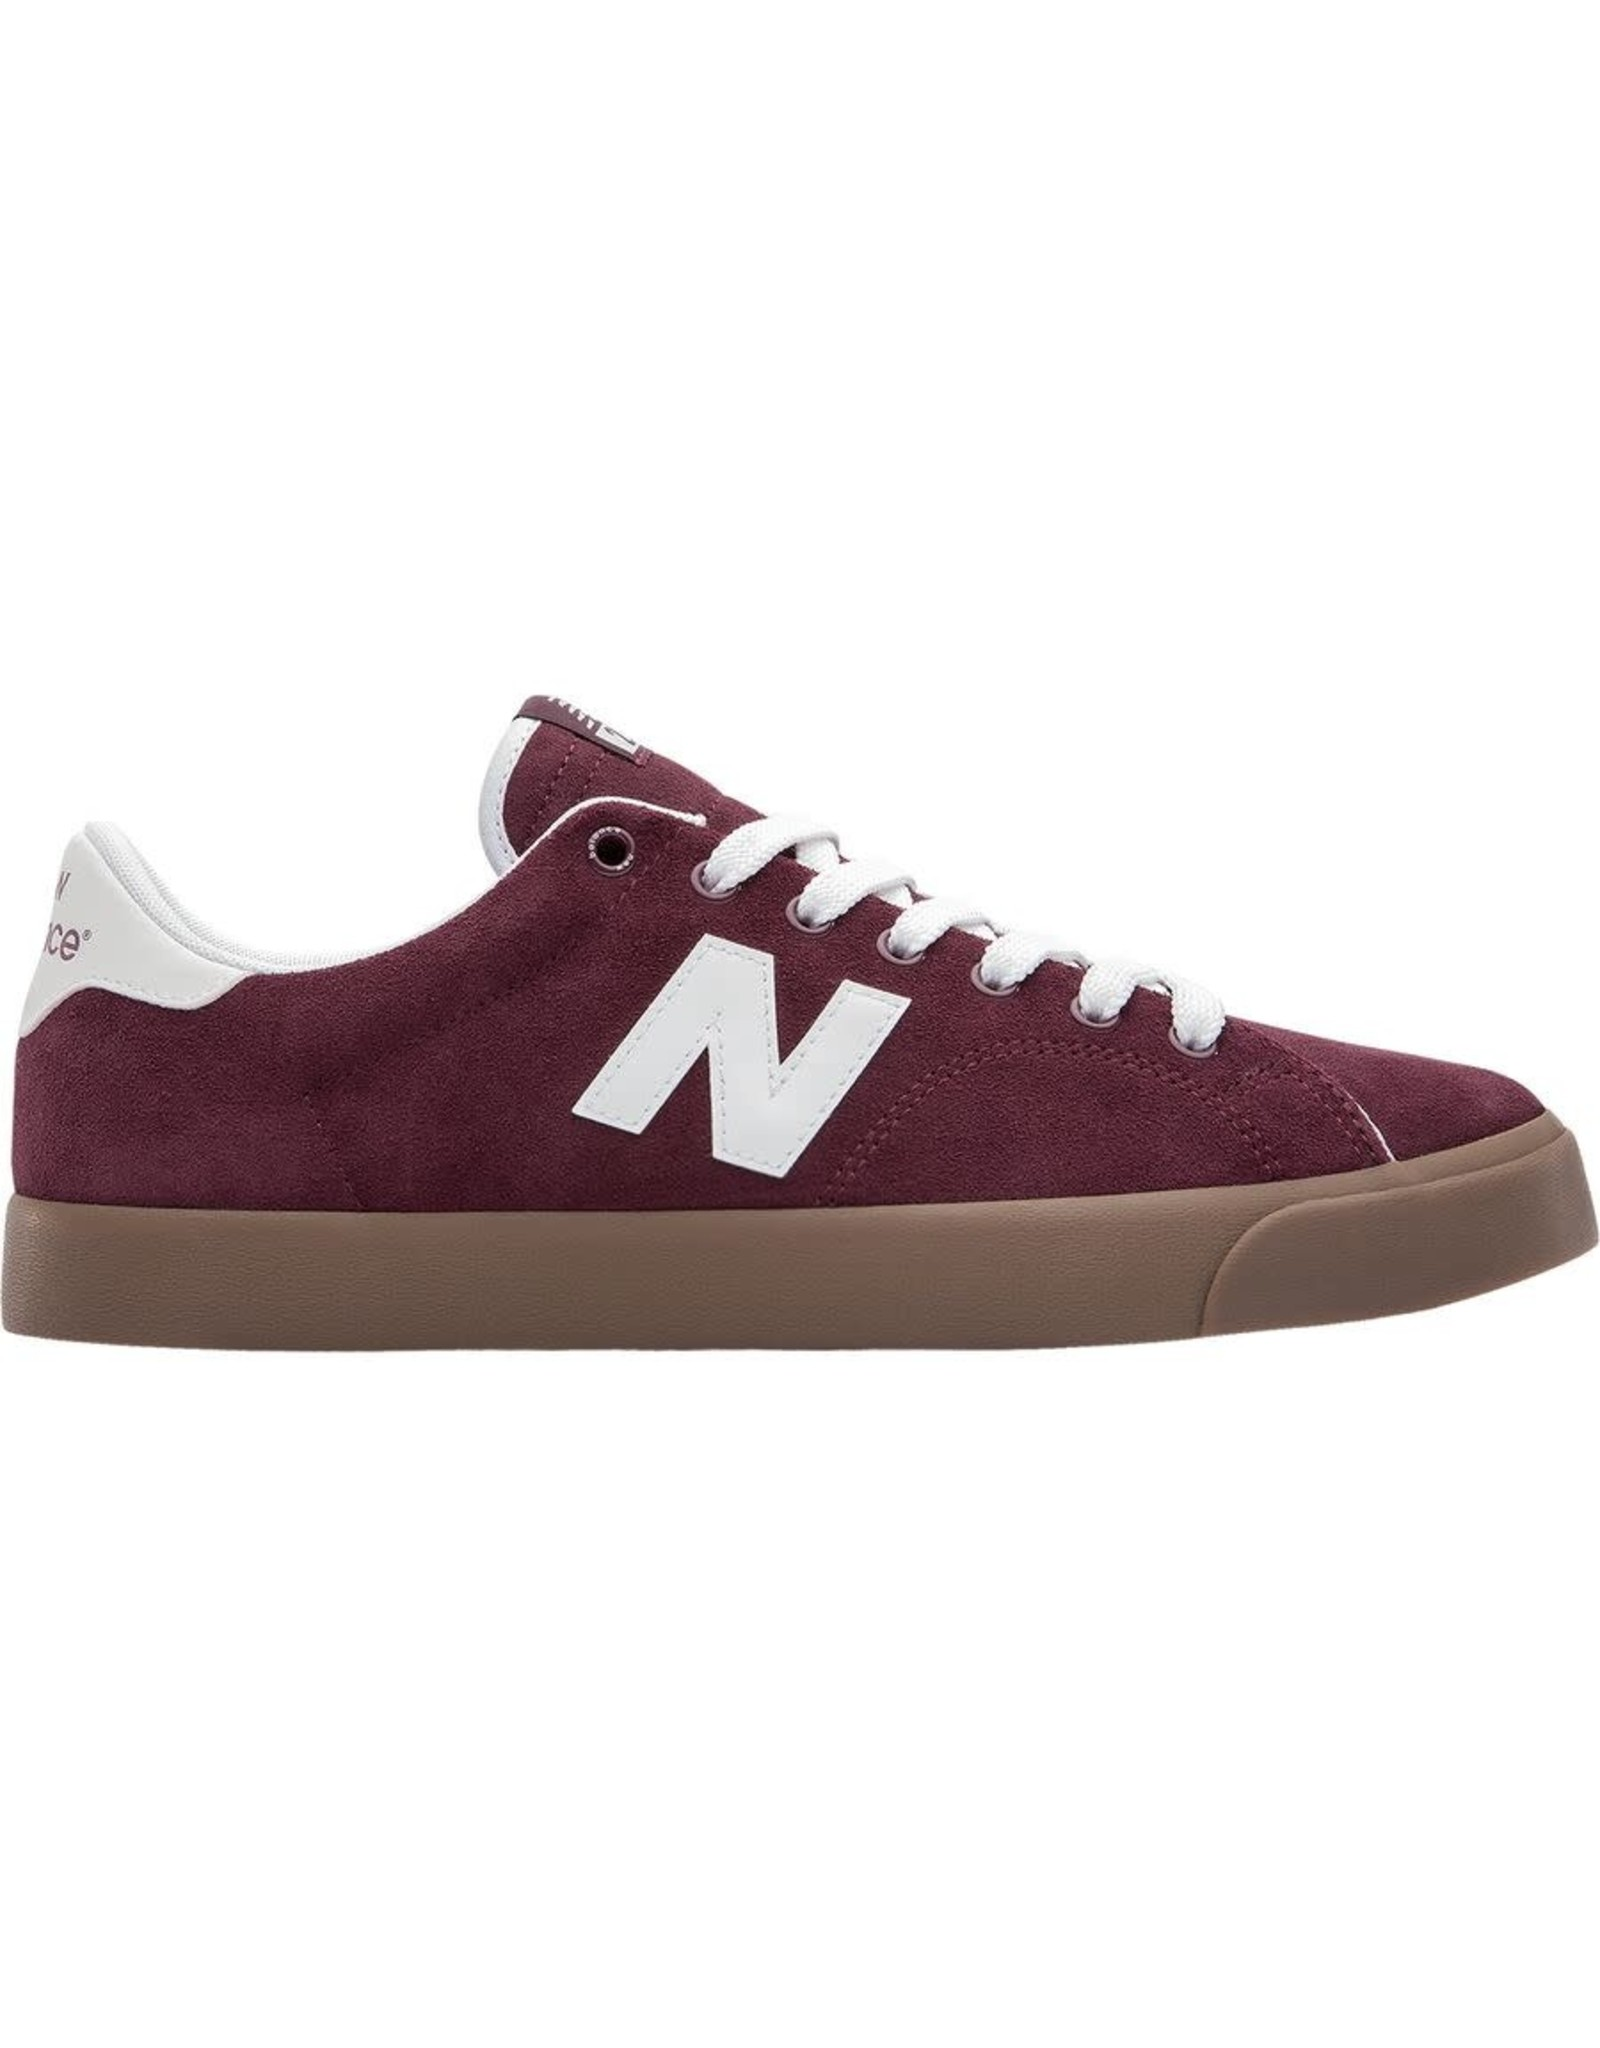 new balance New Balance - Soulier homme all coast 210 burgundy/gum